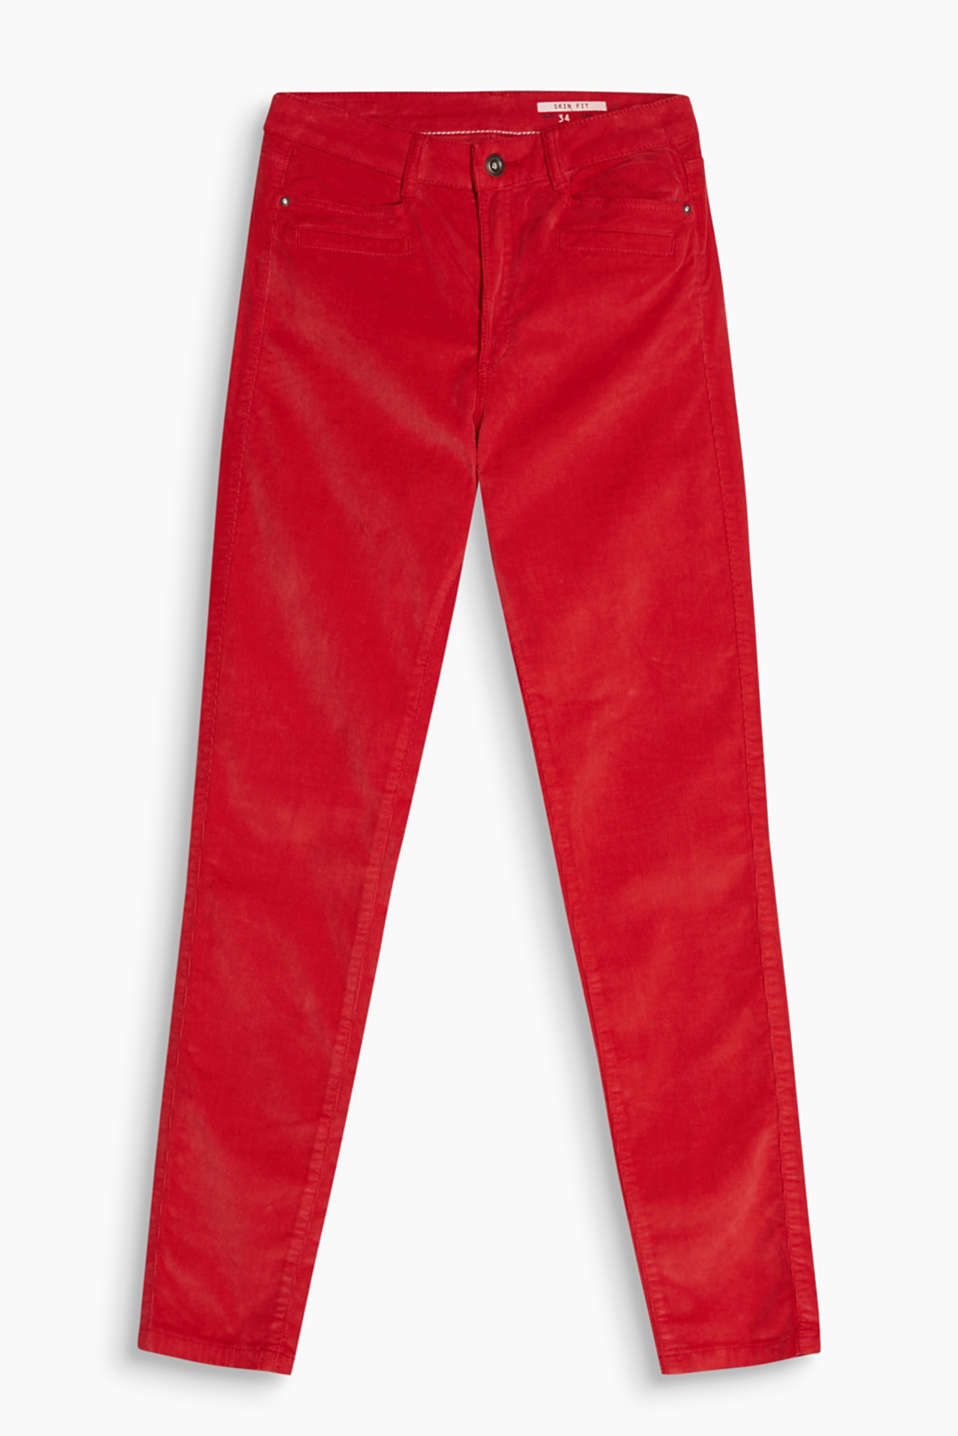 Five-pocket corduroy trousers in blended cotton